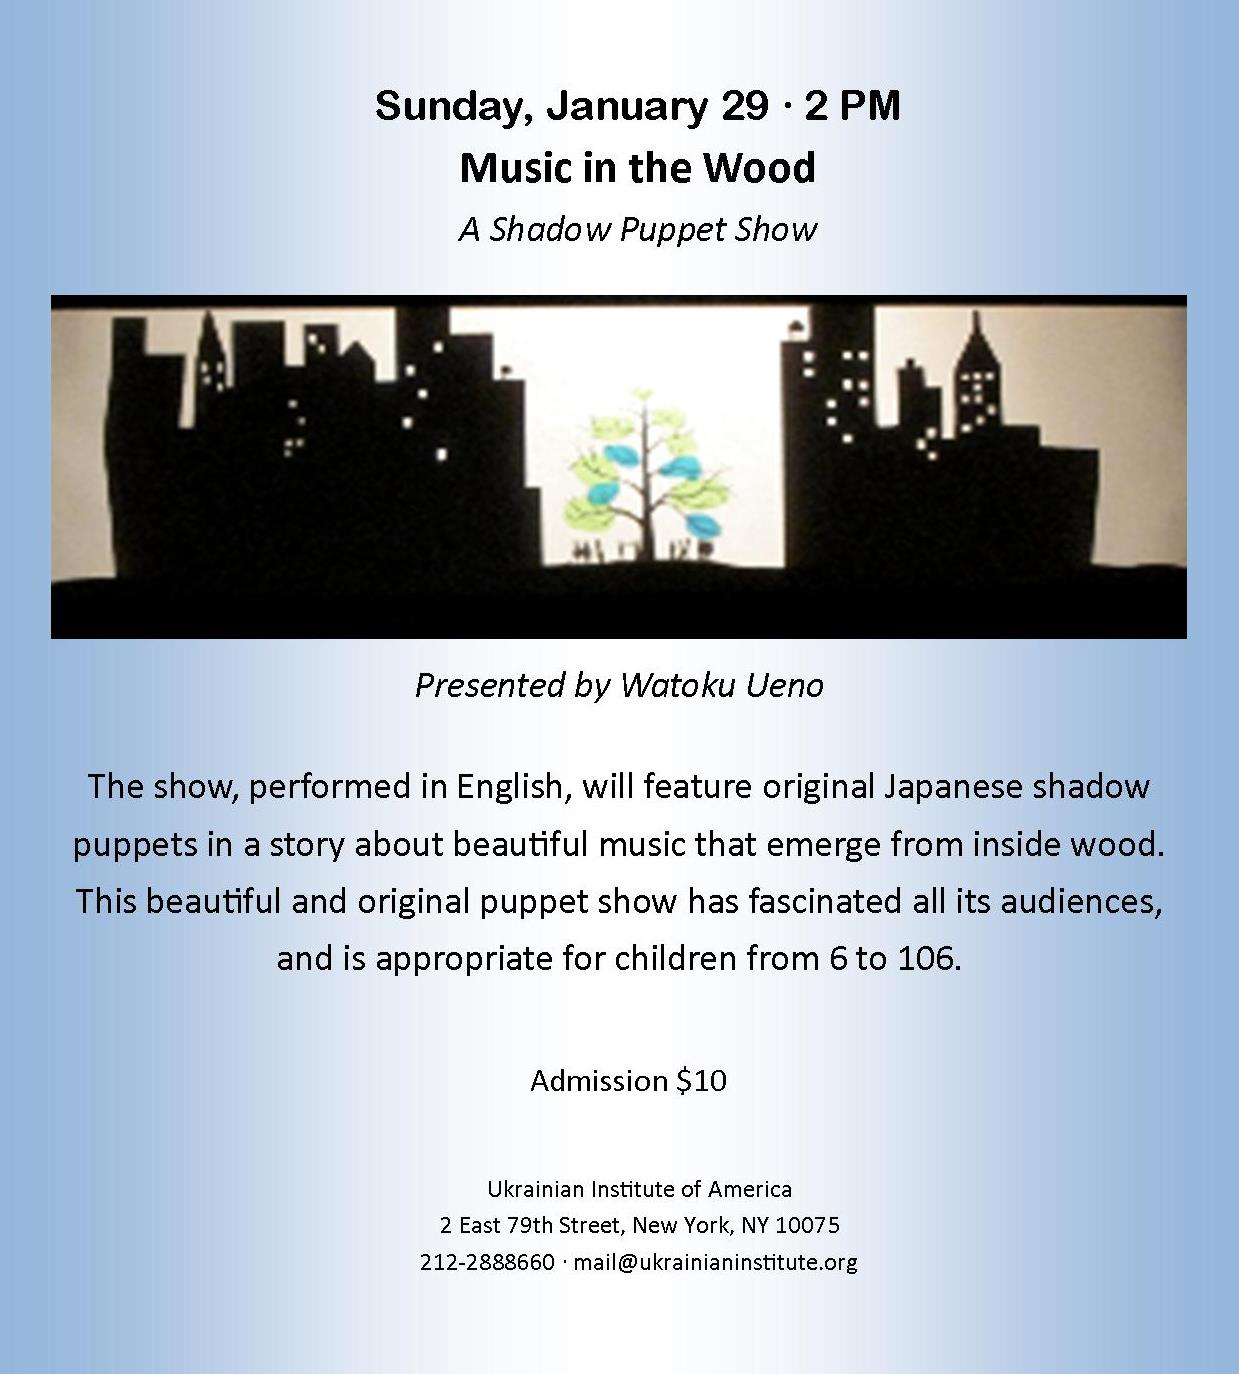 5 - Shadow Puppet Show. Music in the Wood. YARA, 01.29.12